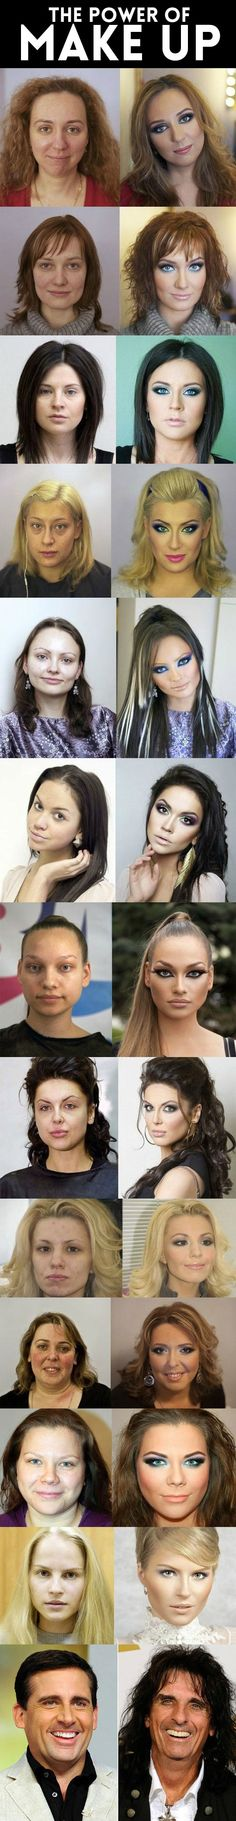 "The great power of makeup… or as I call it ""false advertising!"""